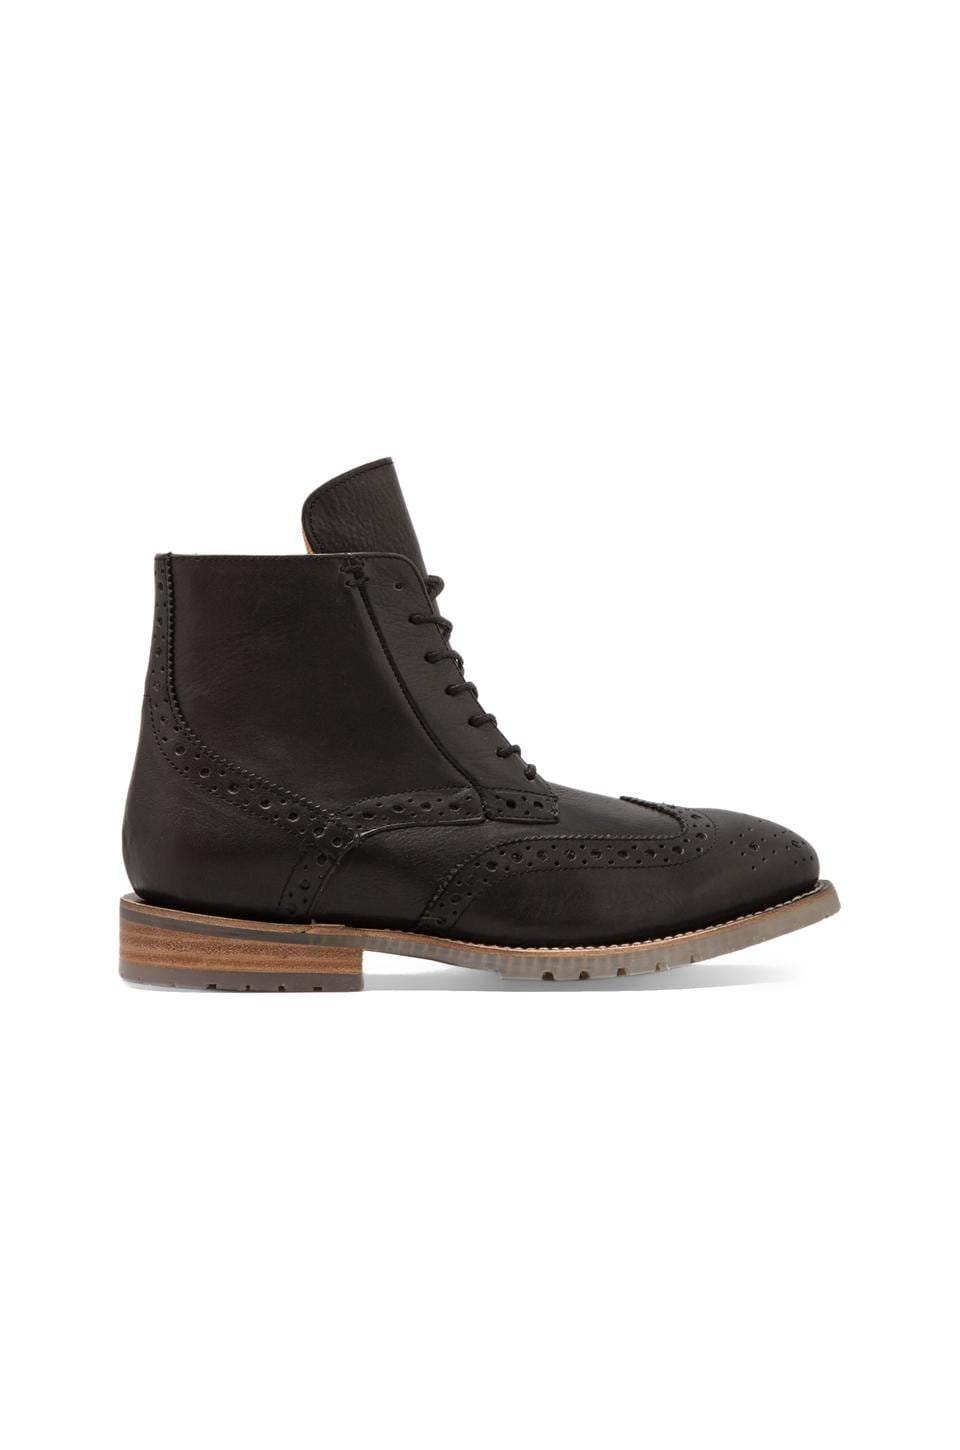 J.D. FISK Phinney Boot in Black